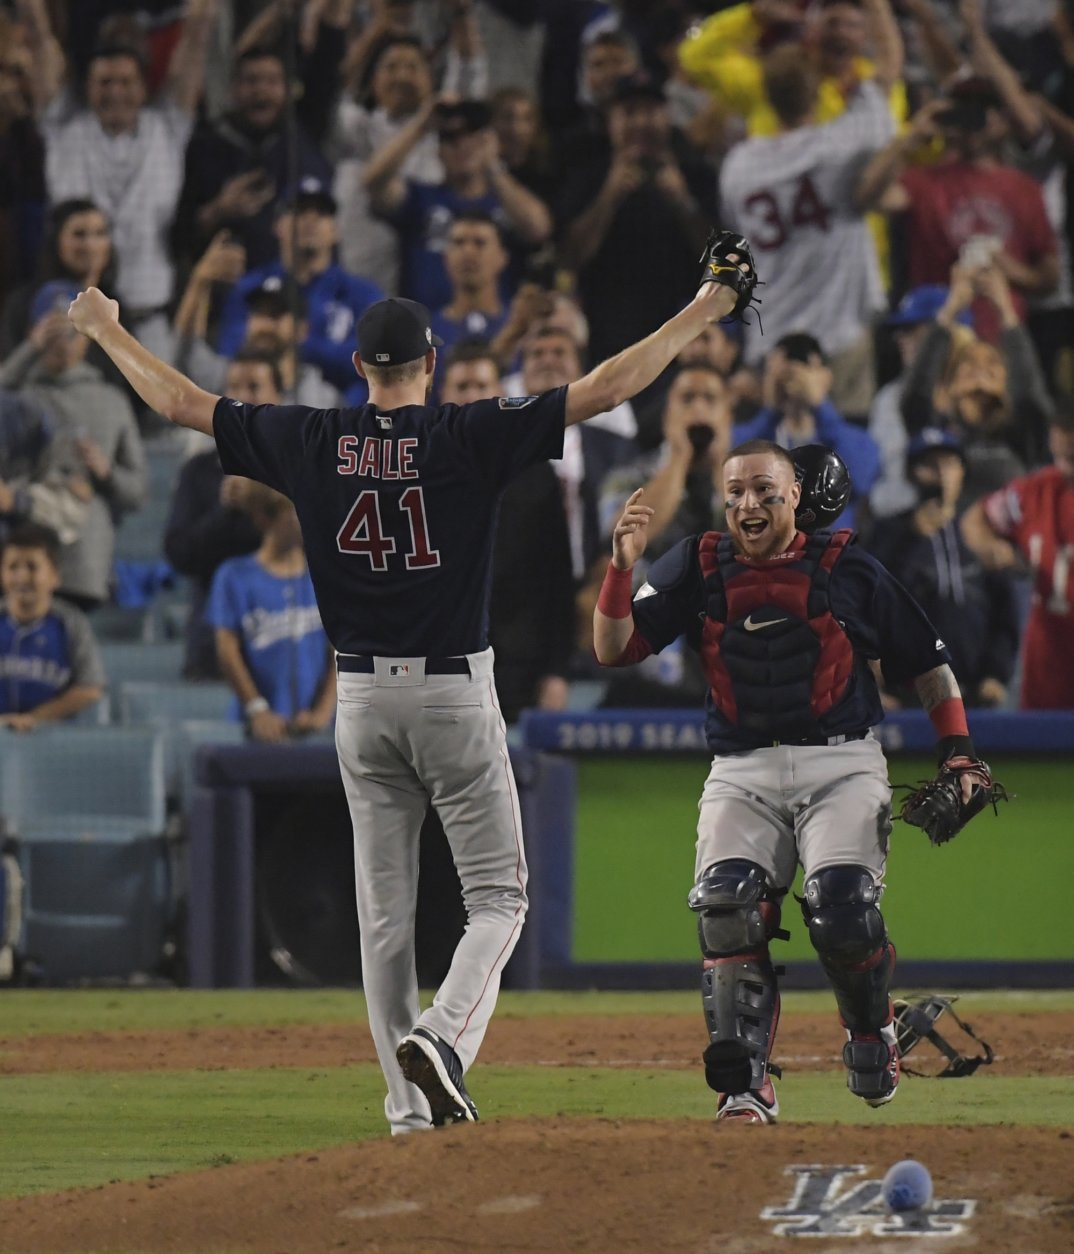 Boston Red Sox catcher Christian Vazquez celebrates Chris Sale's arms after Game 5 of baseball's World Series against the Los Angeles Dodgers on Sunday, Oct. 28, 2018, in Los Angeles. The Red Sox won 5-1 to win the series 4 game to 1. (AP Photo/Mark J. Terrill)